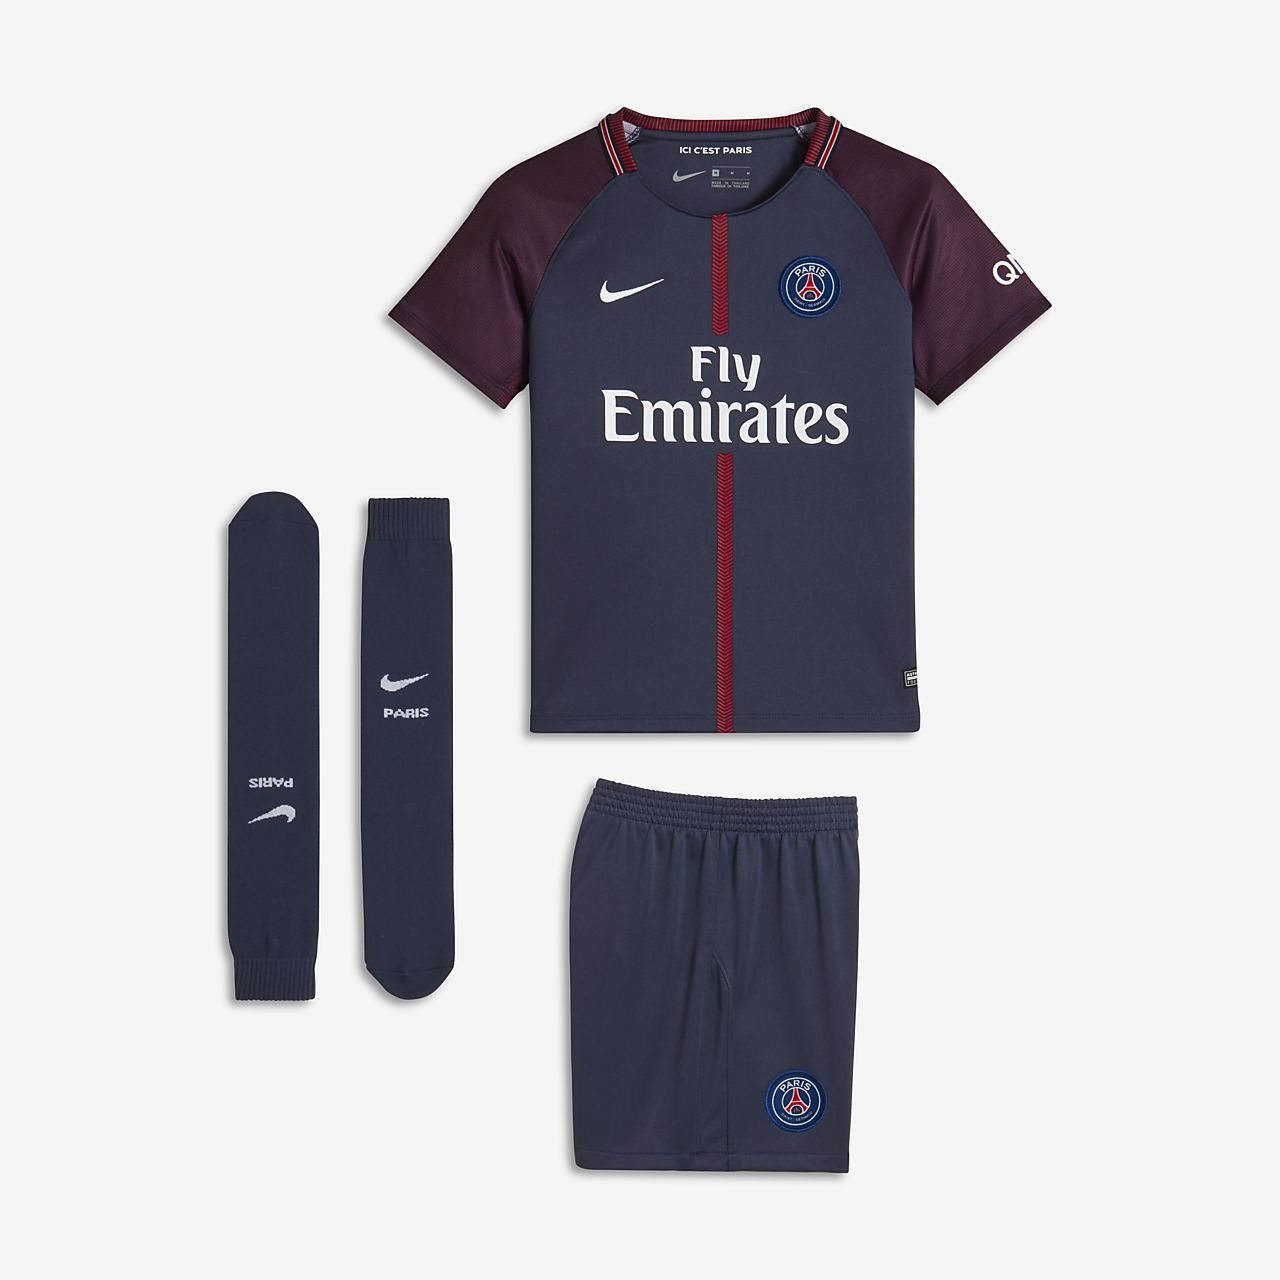 ... 2017/18 Paris Saint-Germain Stadium Home Little Kids' Soccer Kit